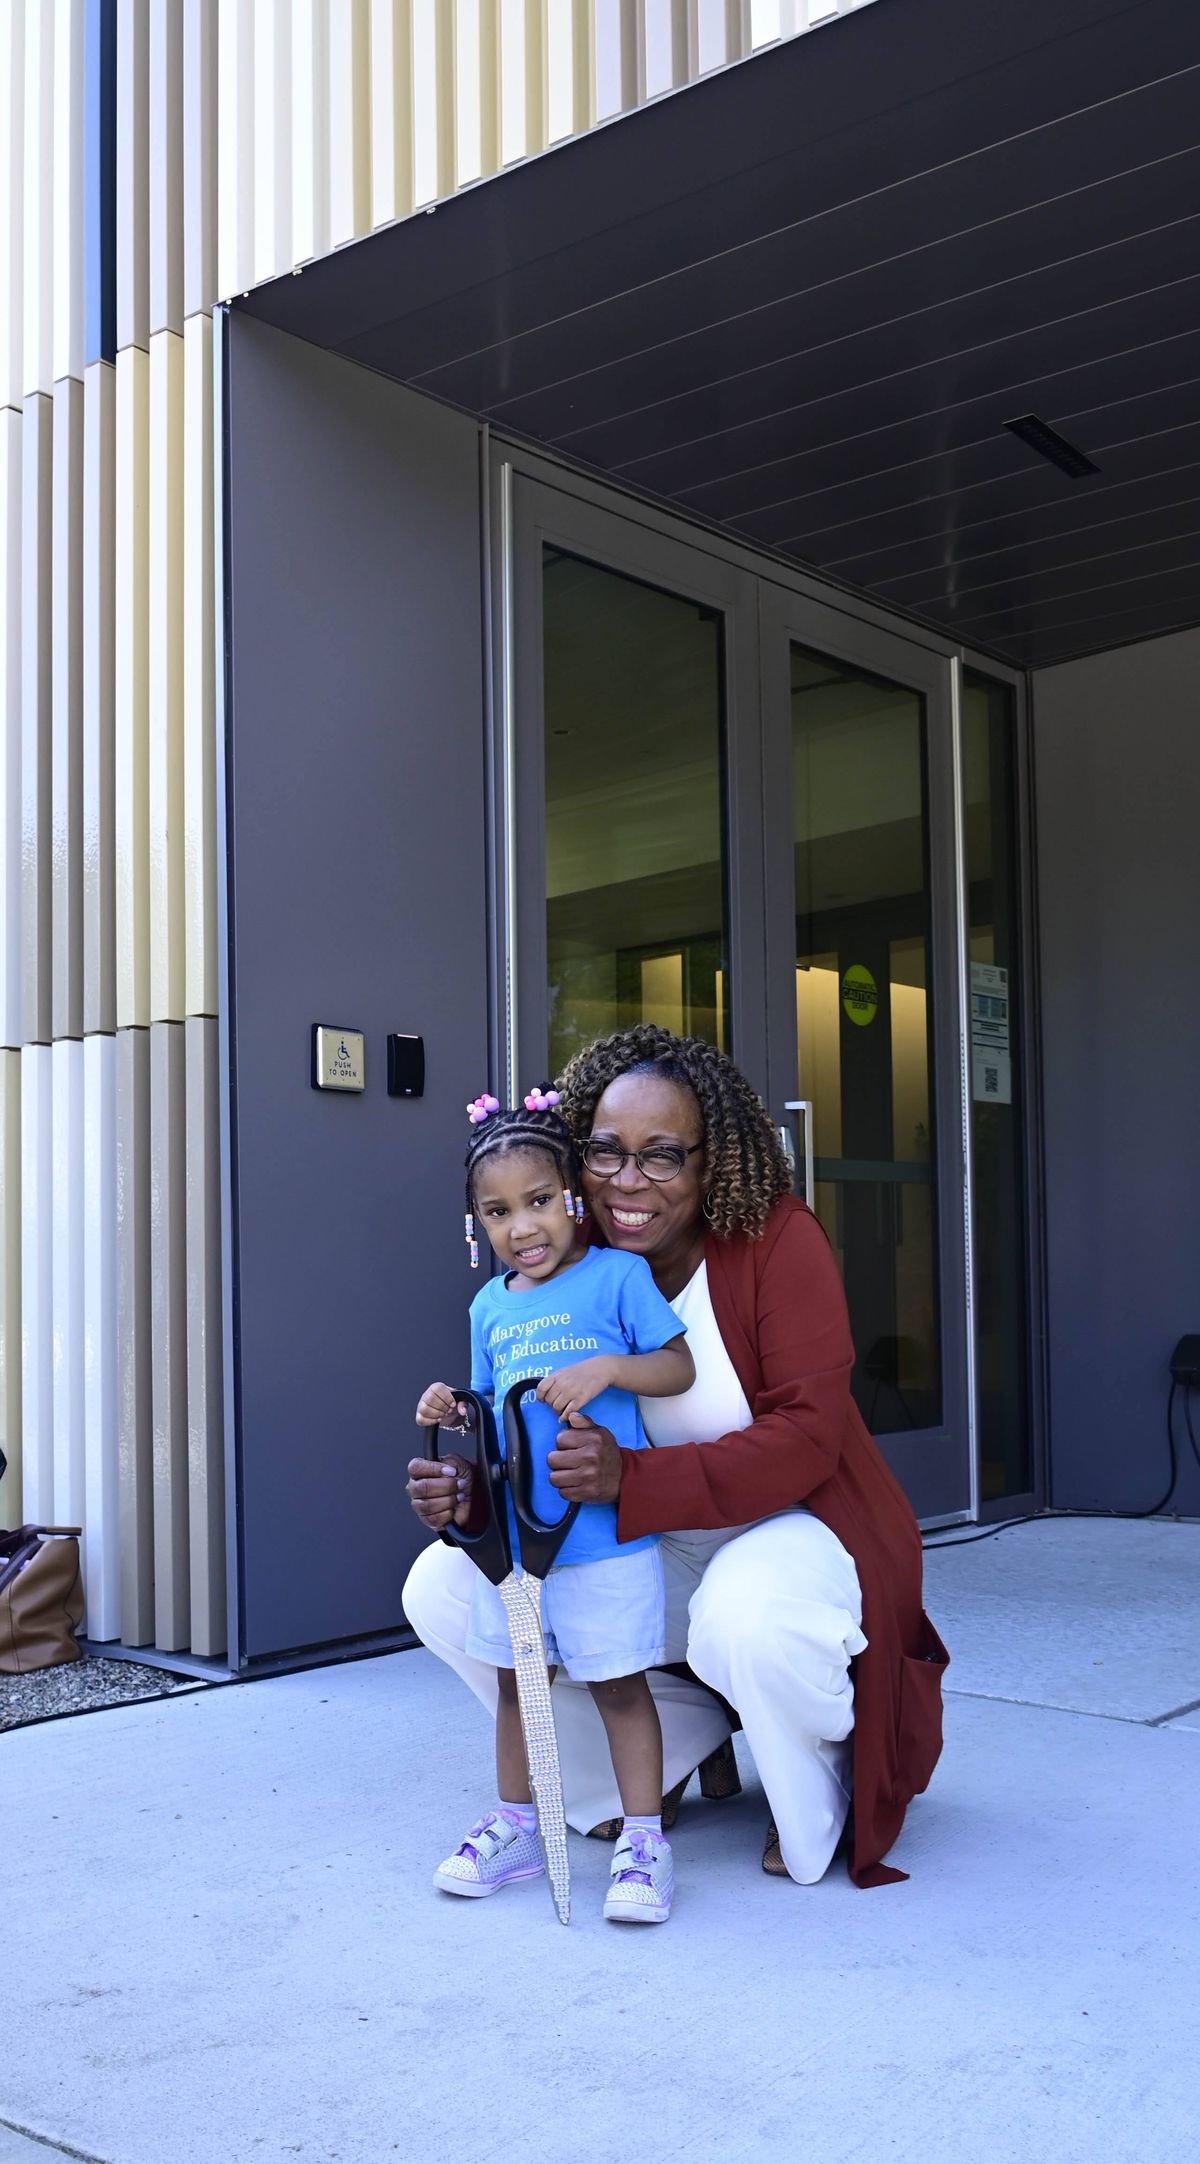 Principal Celina Byrd poses with student Ariyah Small at the grand opening of Marygrove Early Education Center in Detroit.